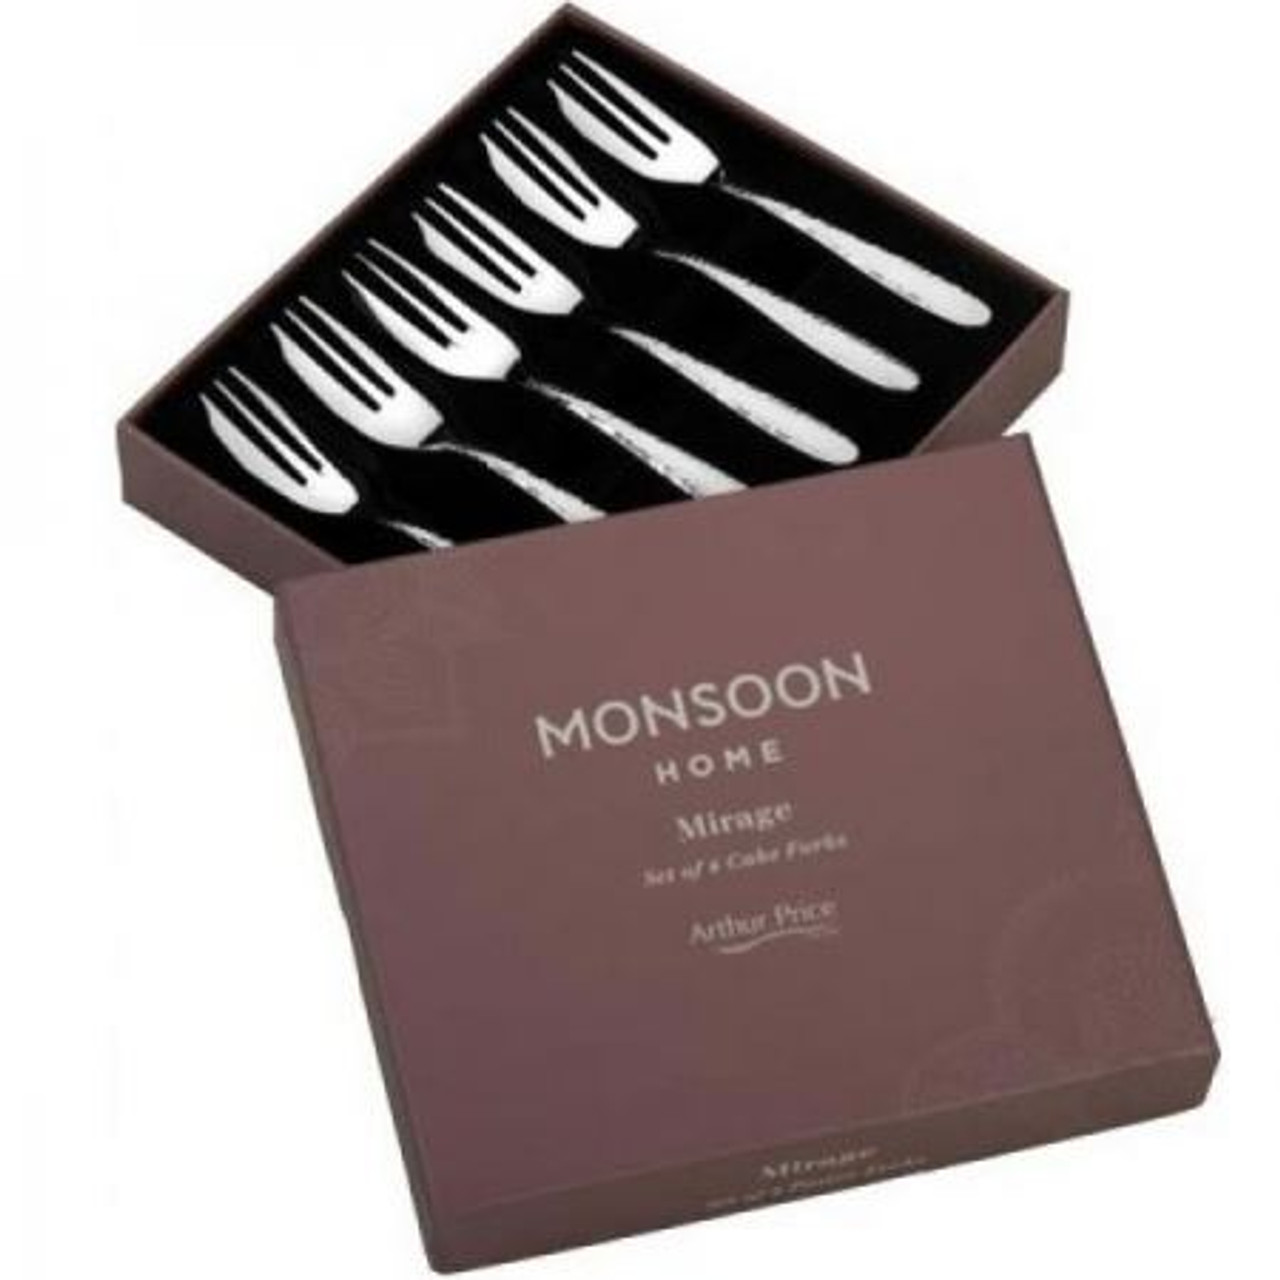 Arthur Price Monsoon Mirage Pastry Forks